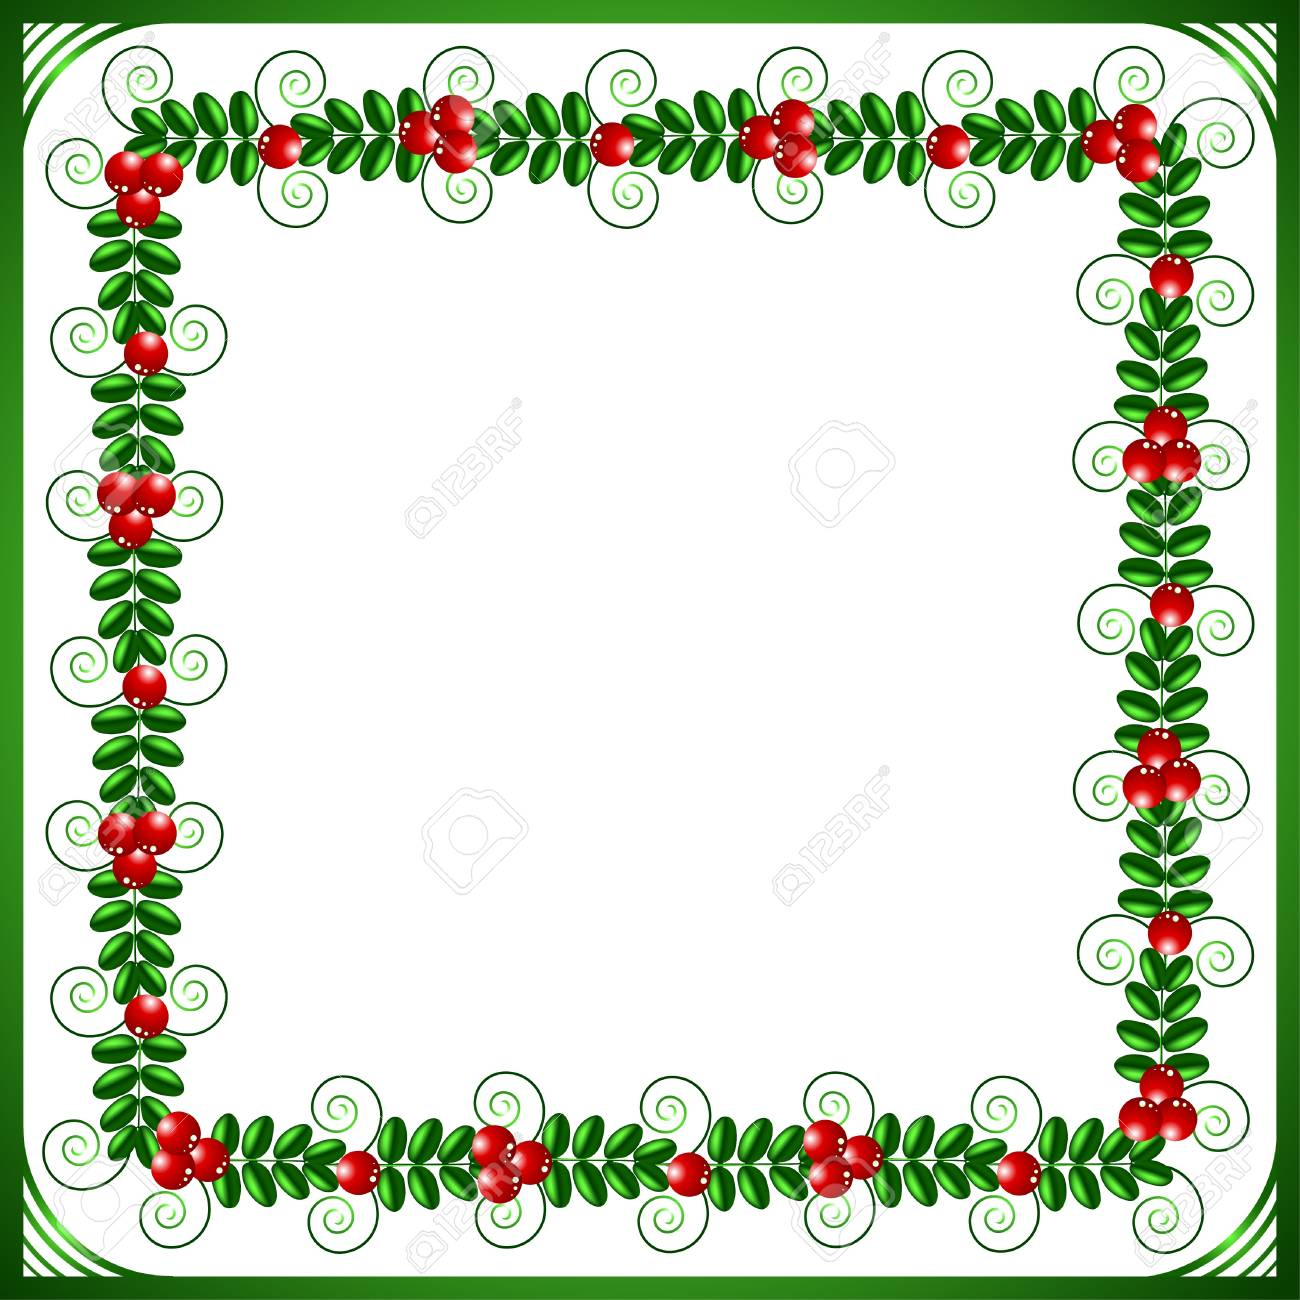 Green frame with leafs and berries on a white background Stock Vector - 10896604